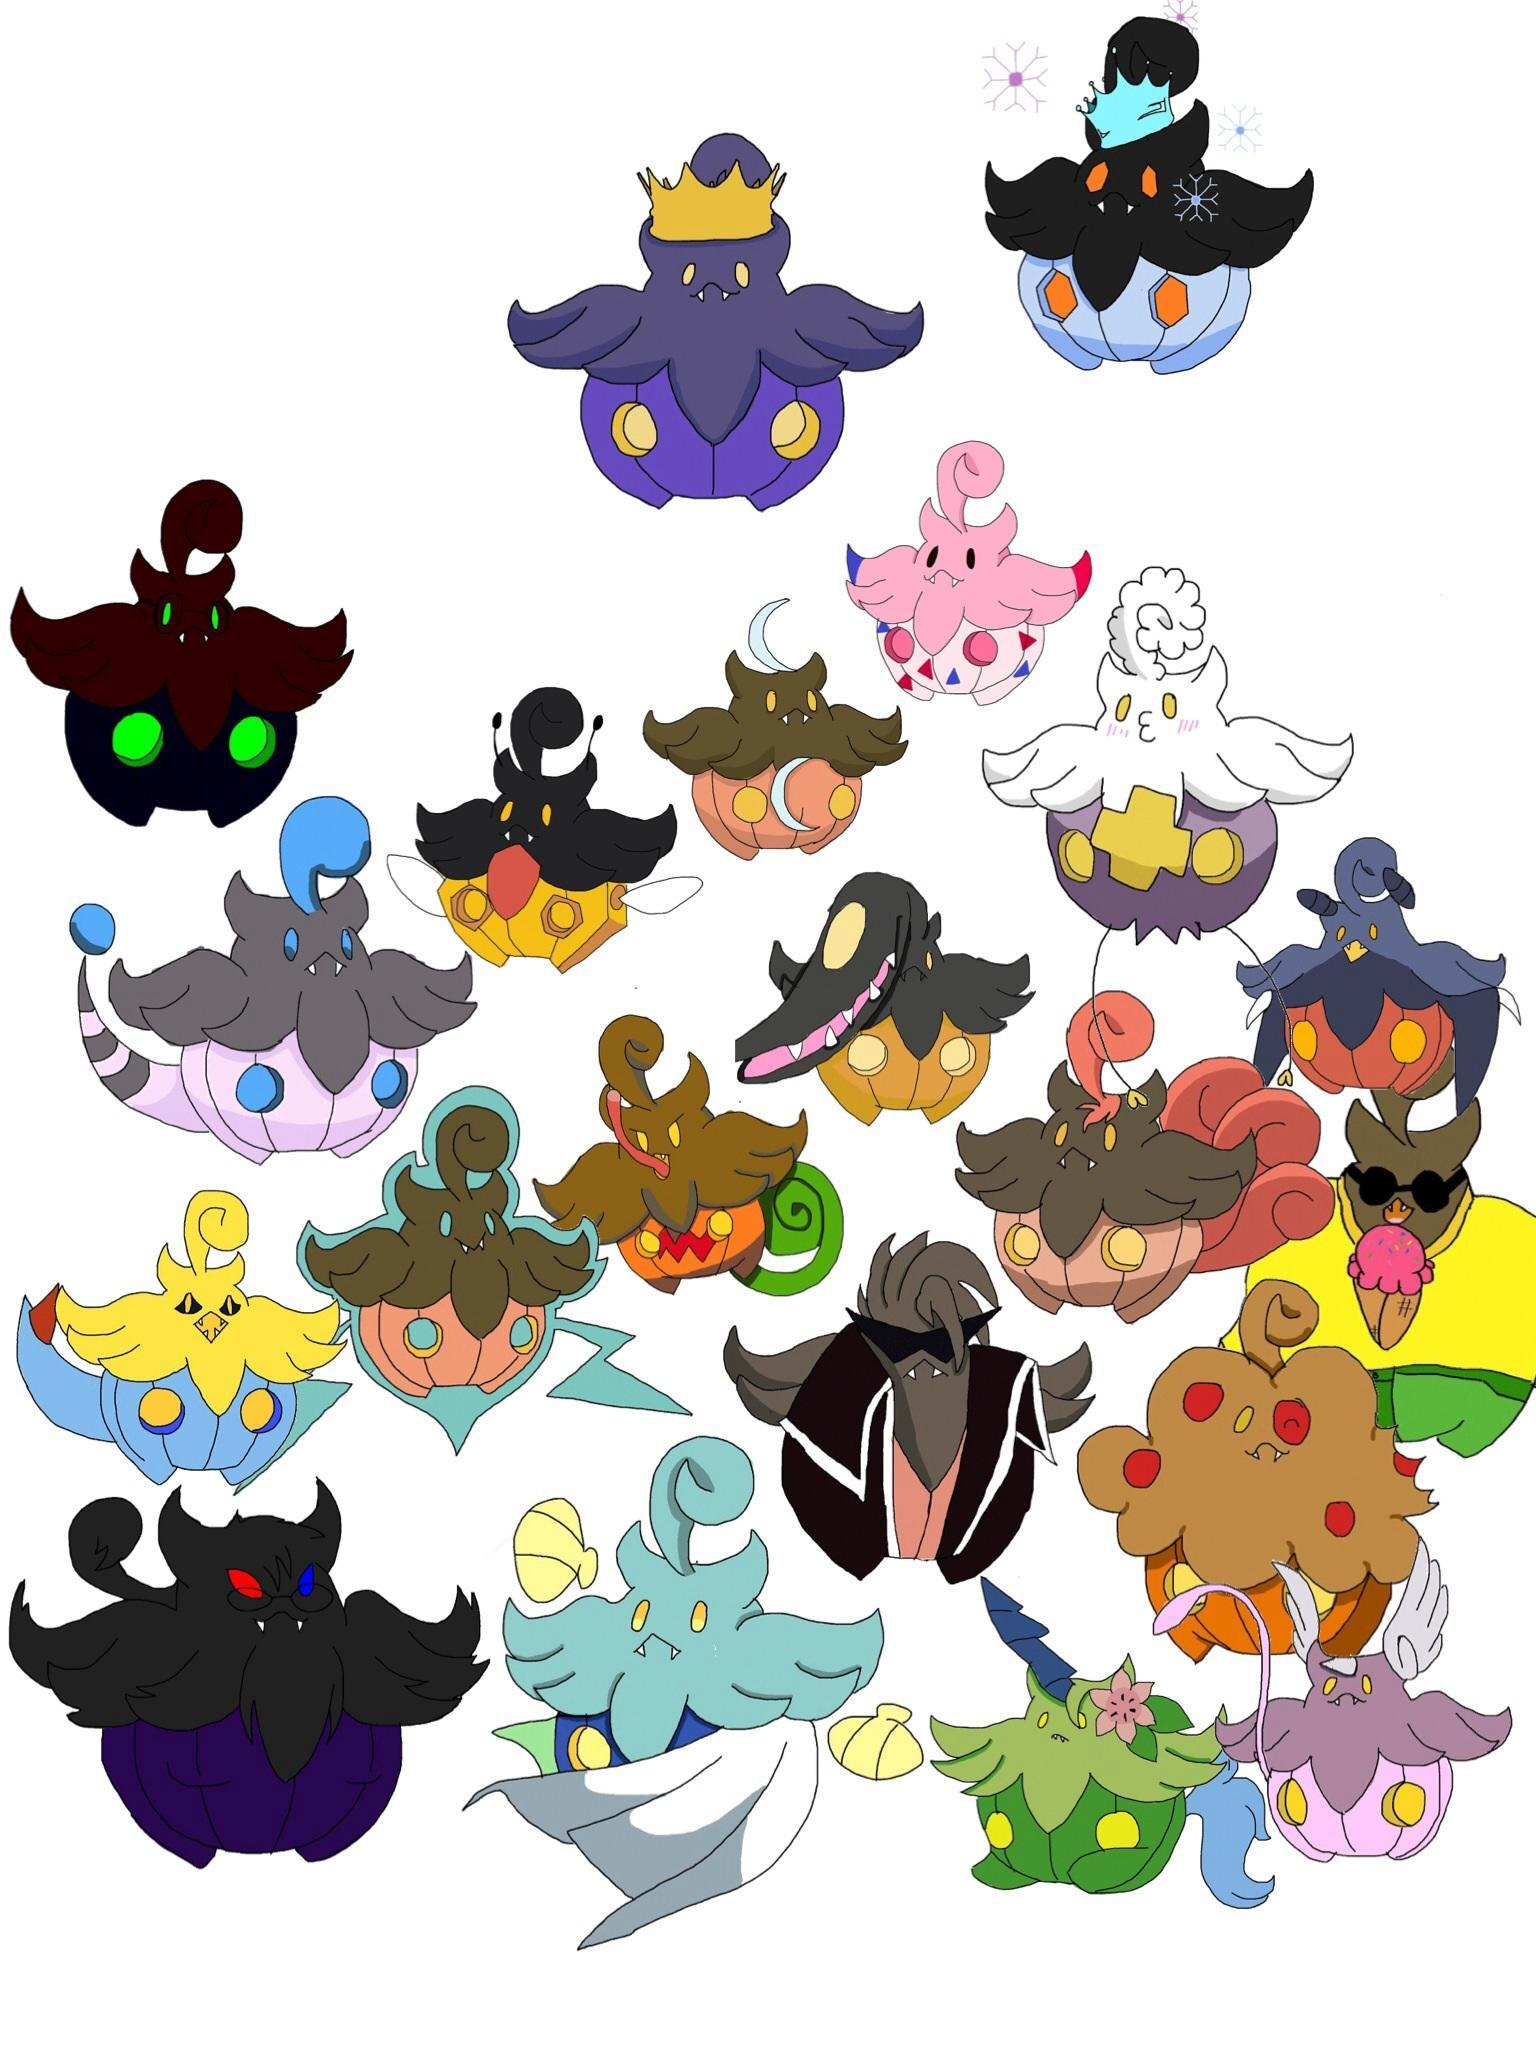 What Pumpkaboo Are You?